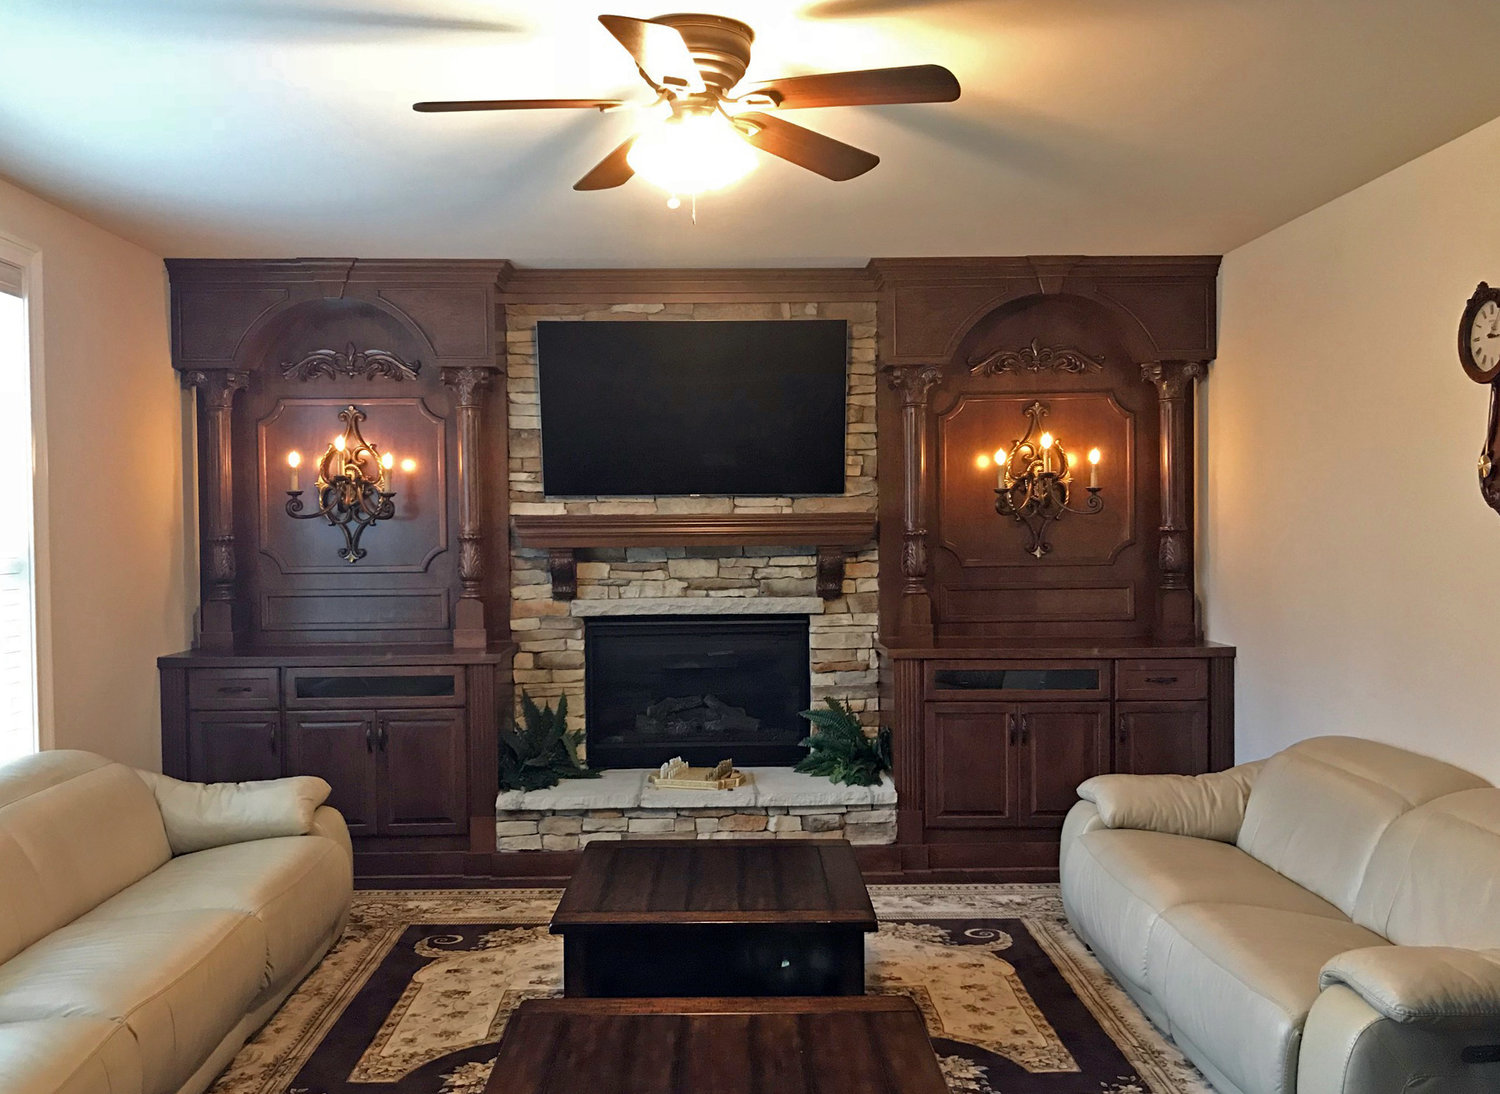 Fireplace Built-Ins with Shaker Doors, Custom Molding Details and Columns, and Arches